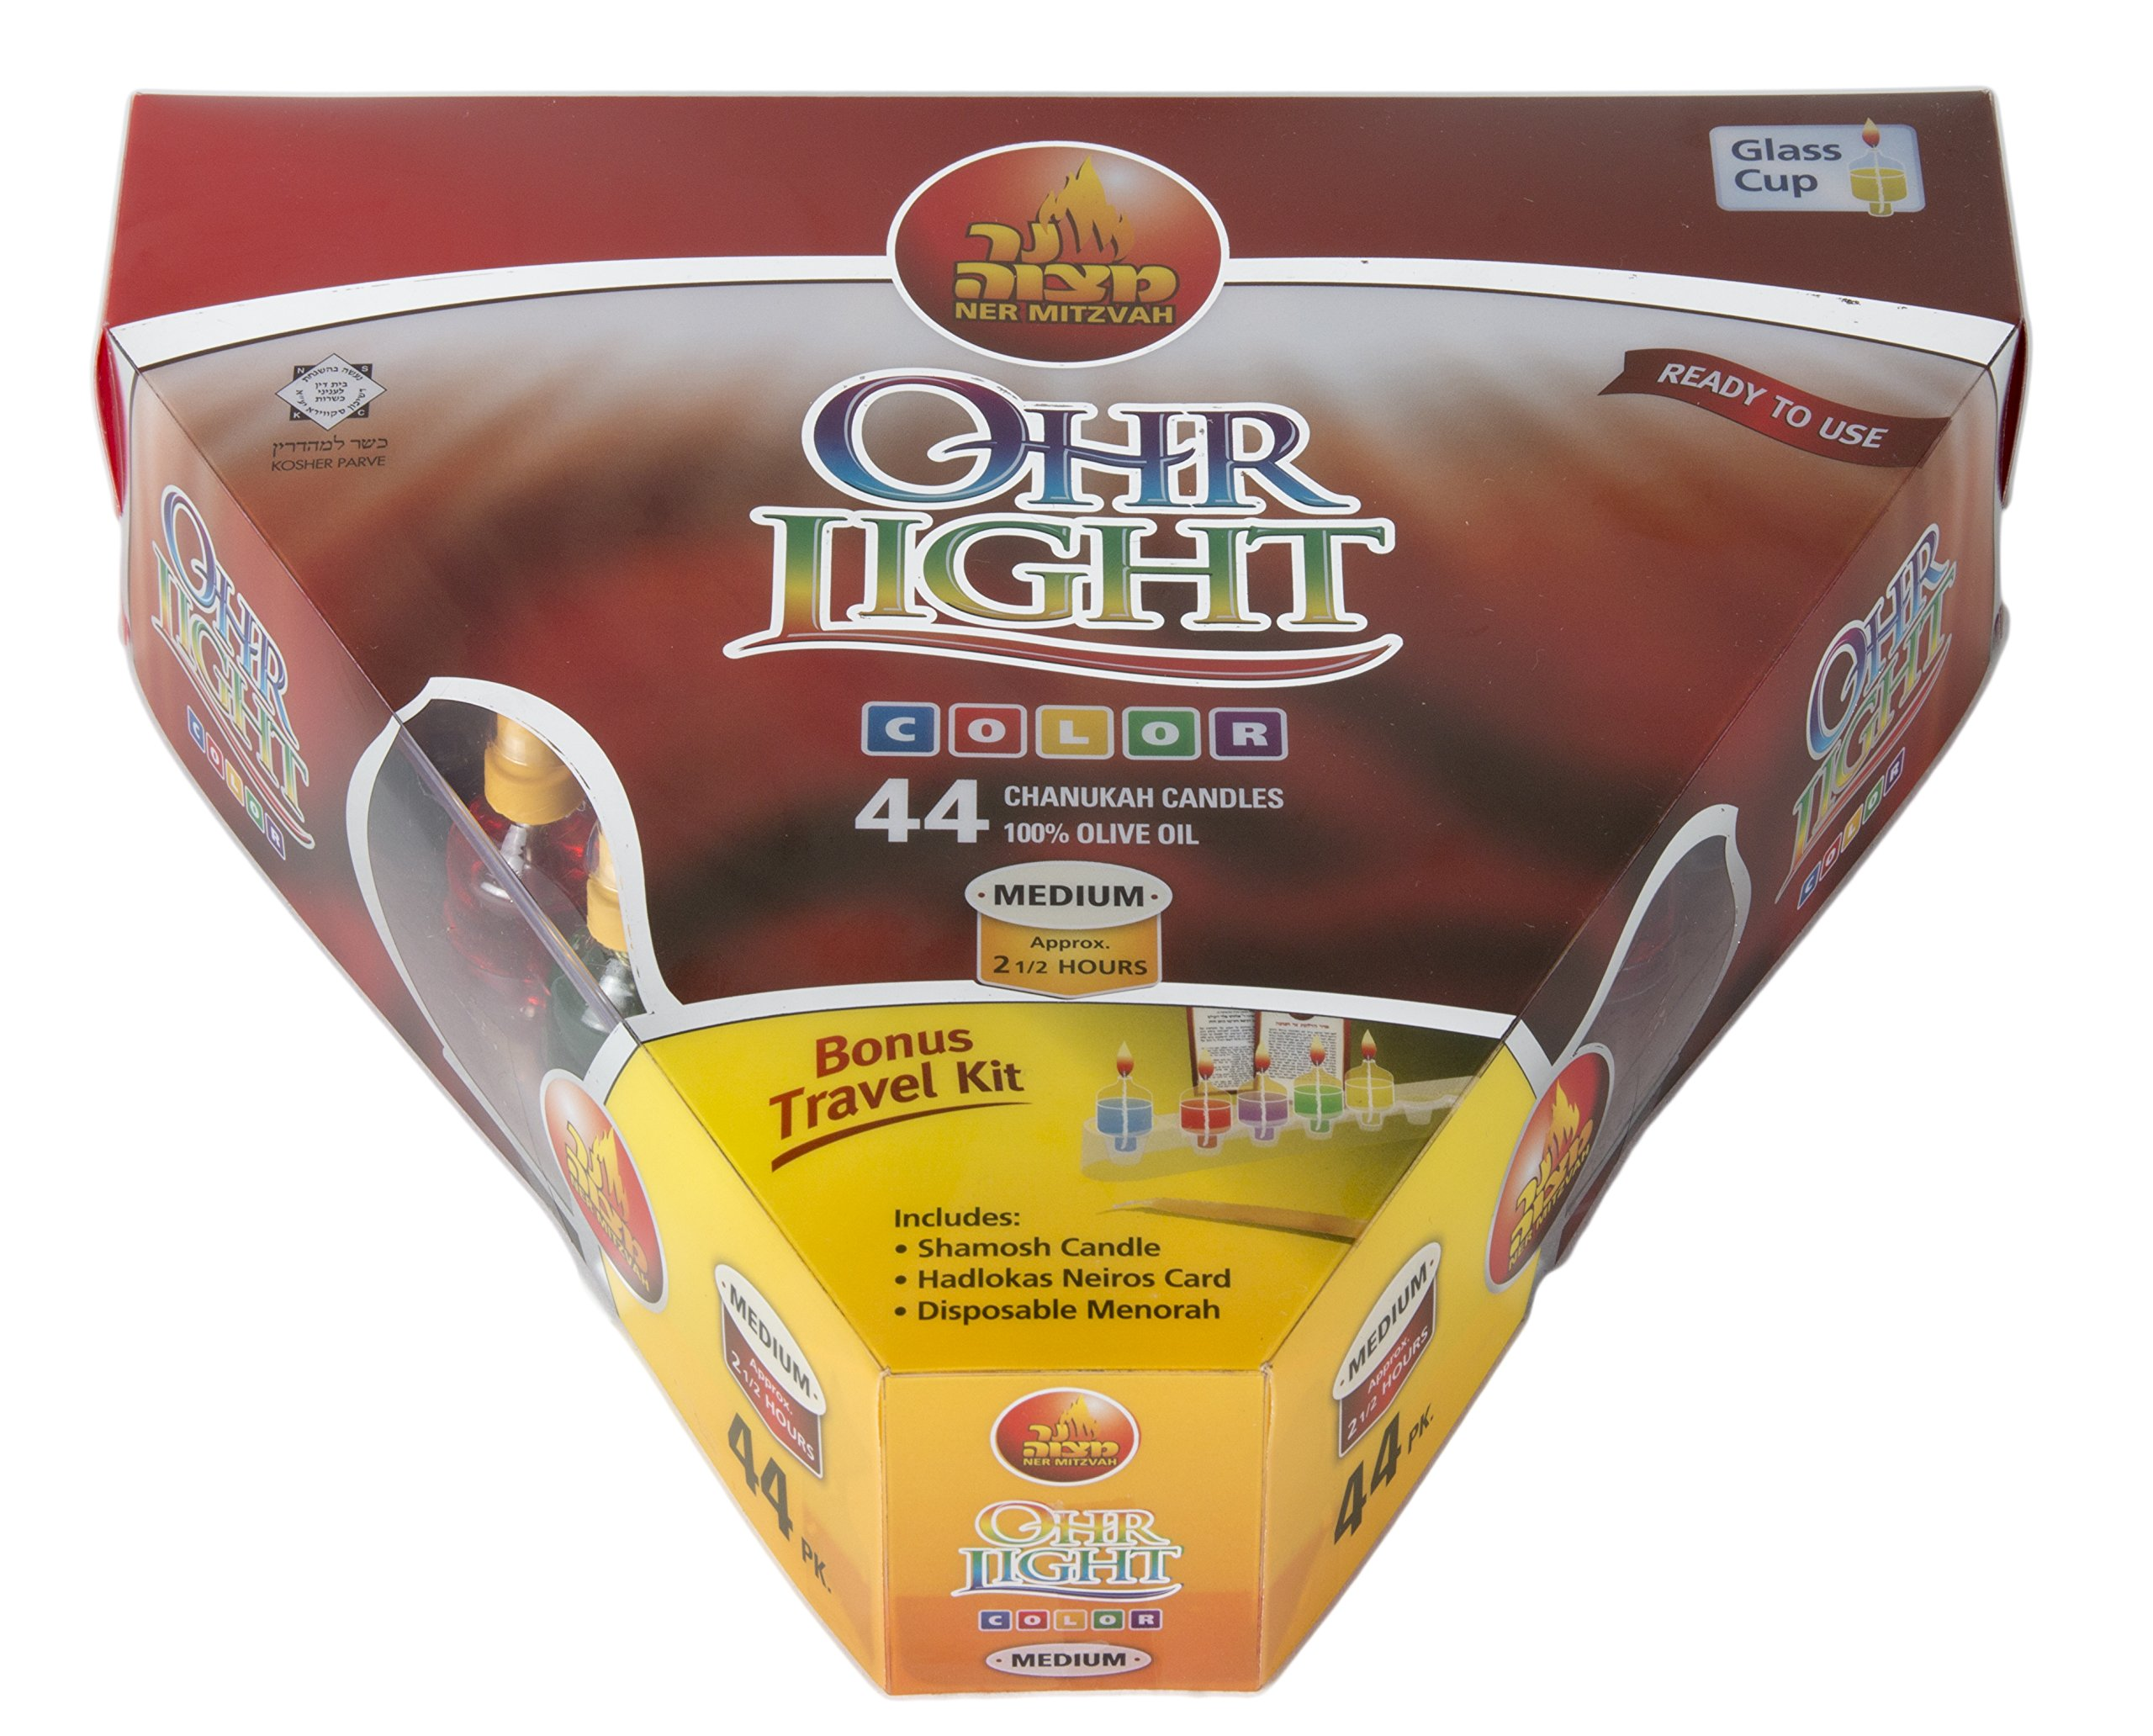 Ner Mitzvah Pre-Filled Colored Menorah Oil Cup Candles - Hanukkah Ohr Lights - 100% Olive Oil with Cotton Wick in Glass Cup - Medium Size, 44 per Pack, Burns Approx. 2 1/2 Hrs by Ner Mitzvah (Image #2)